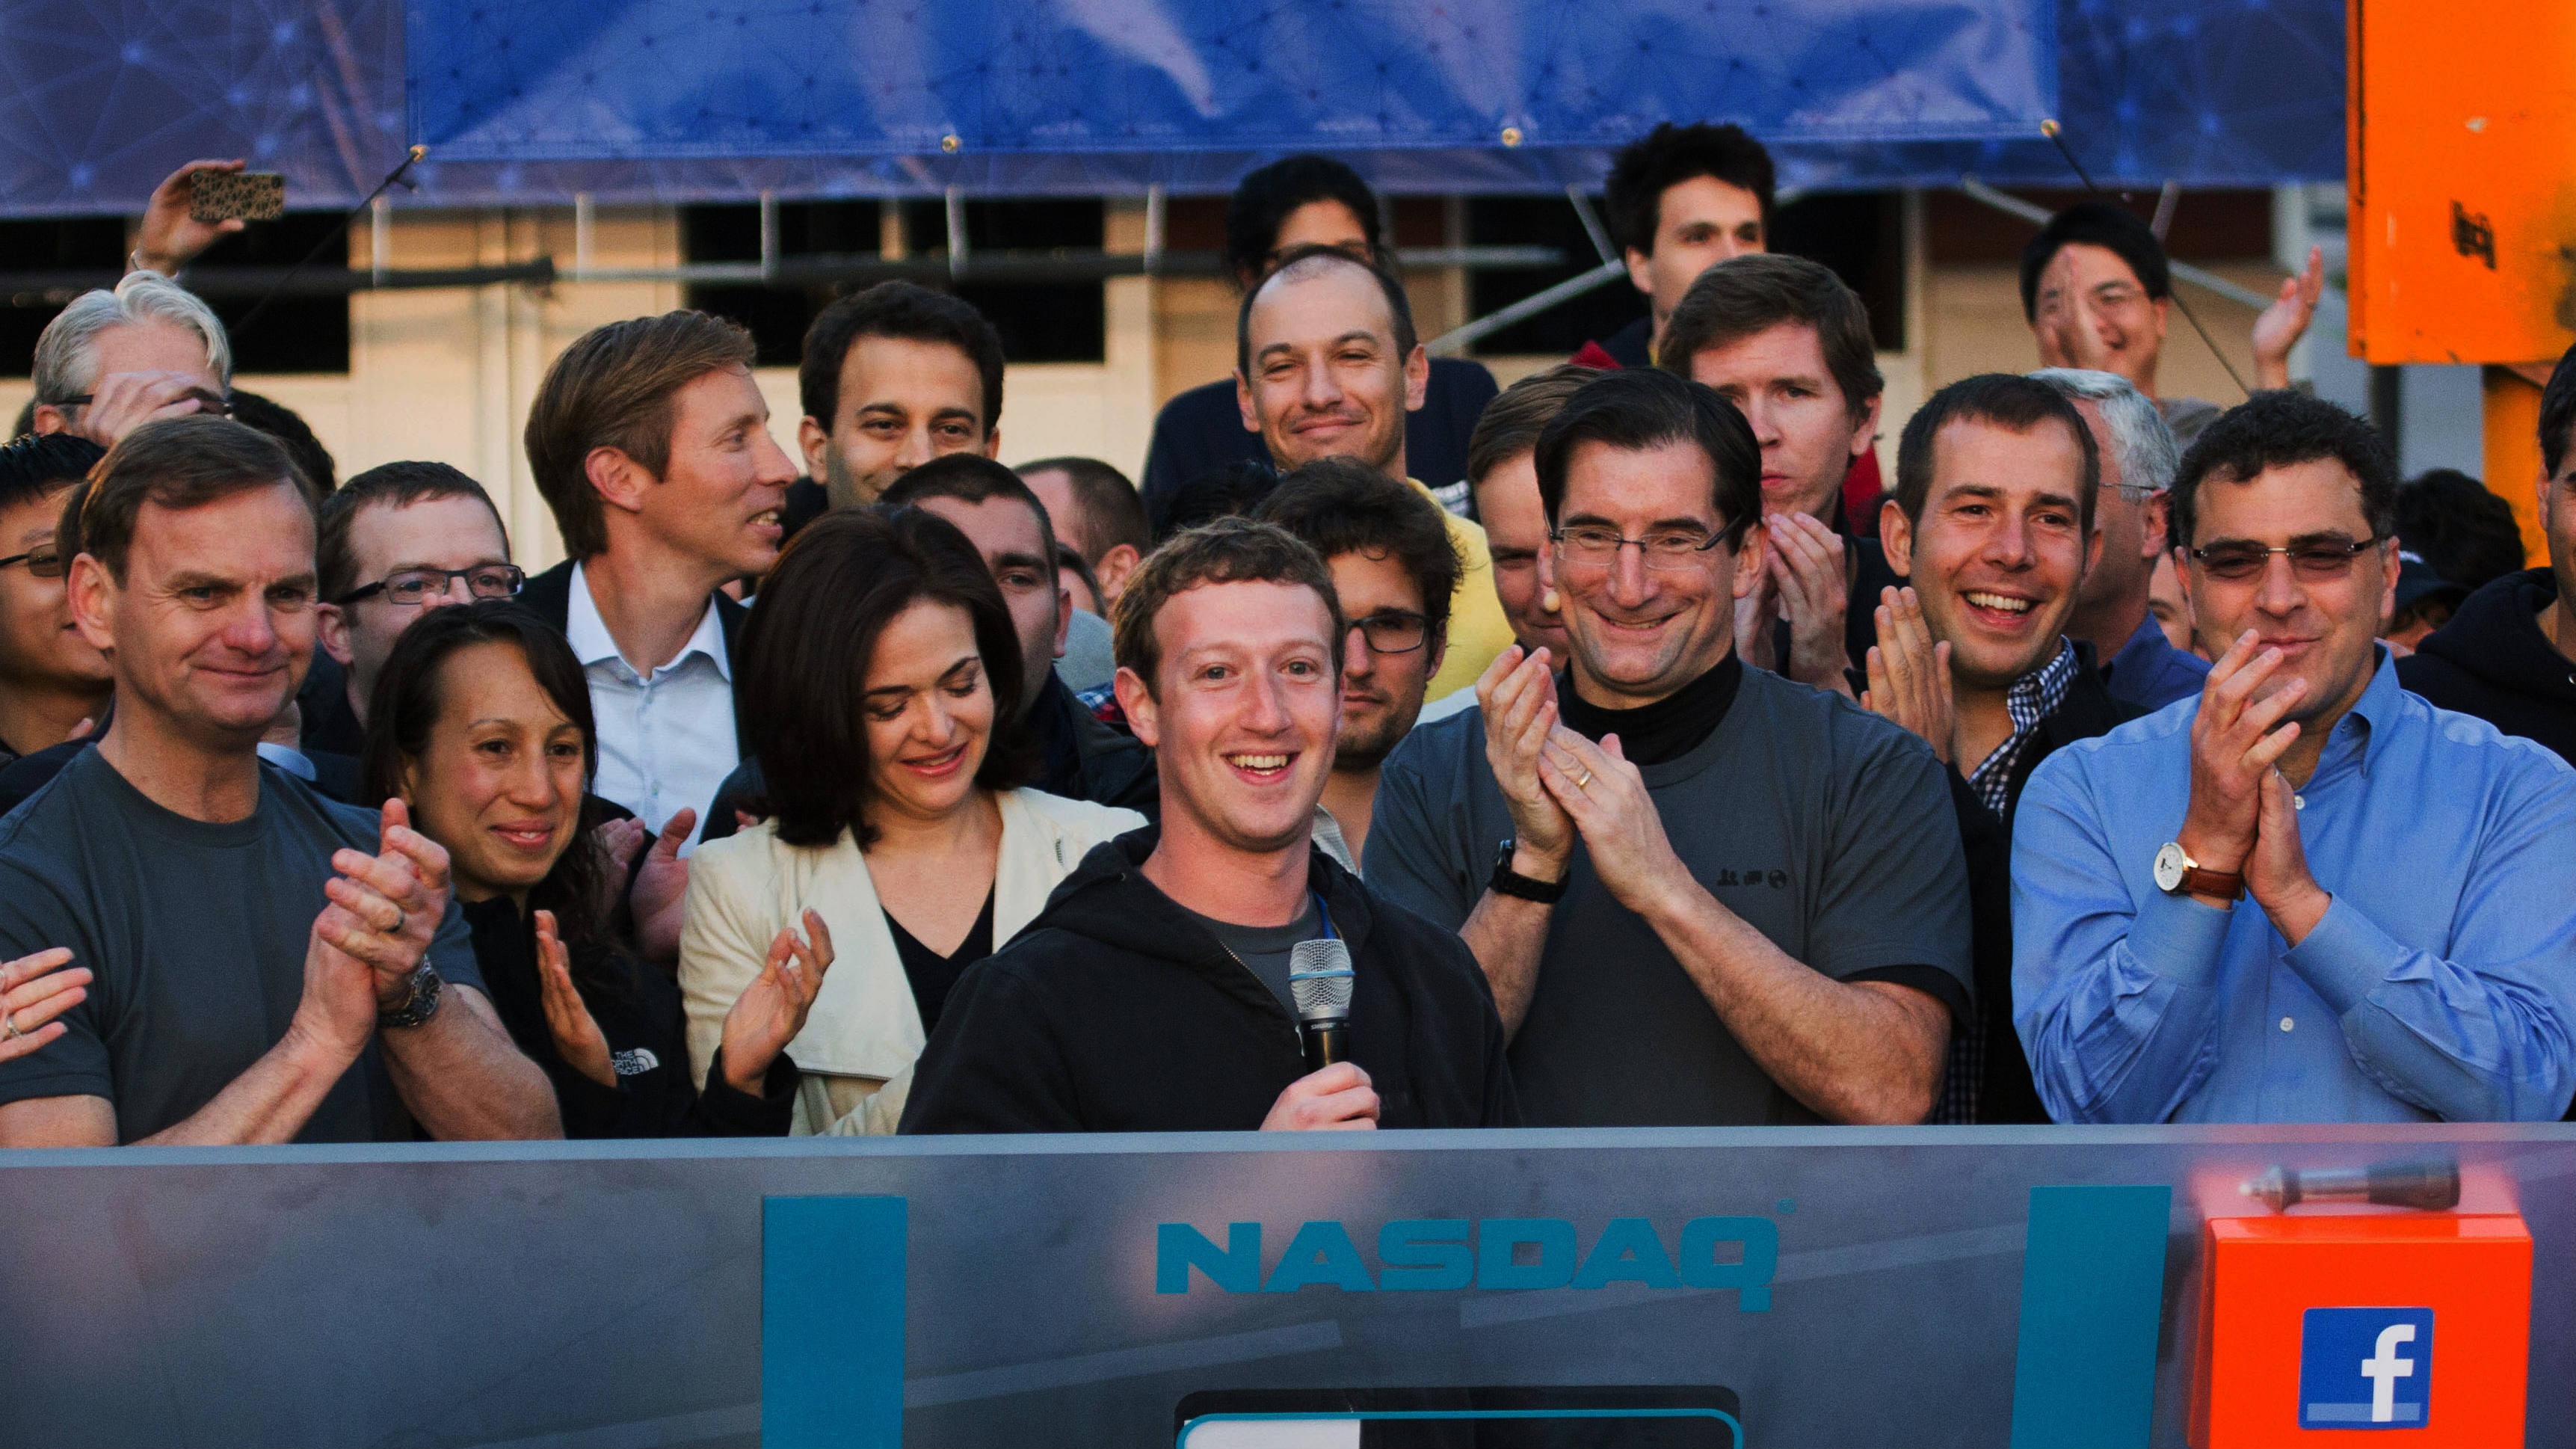 In this May 18, 2012 file photo provided by Facebook, Facebook founder, Chairman and CEO Mark Zuckerberg, center, rings the Nasdaq opening bell from Facebook headquarters in Menlo Park, Calif. Years of anticipation led to Facebook's initial public offering of stock in 2012, the hottest Internet IPO since Google's in 2004. Many of the 1 billion-plus users of the world's largest online social network craved a chance to buy in early. On the eve of its first trading day, Facebook's market value was $105 billion, yet the IPO bombed. (AP Photo/Nasdaq via Facebook, Zef Nikolla, File)